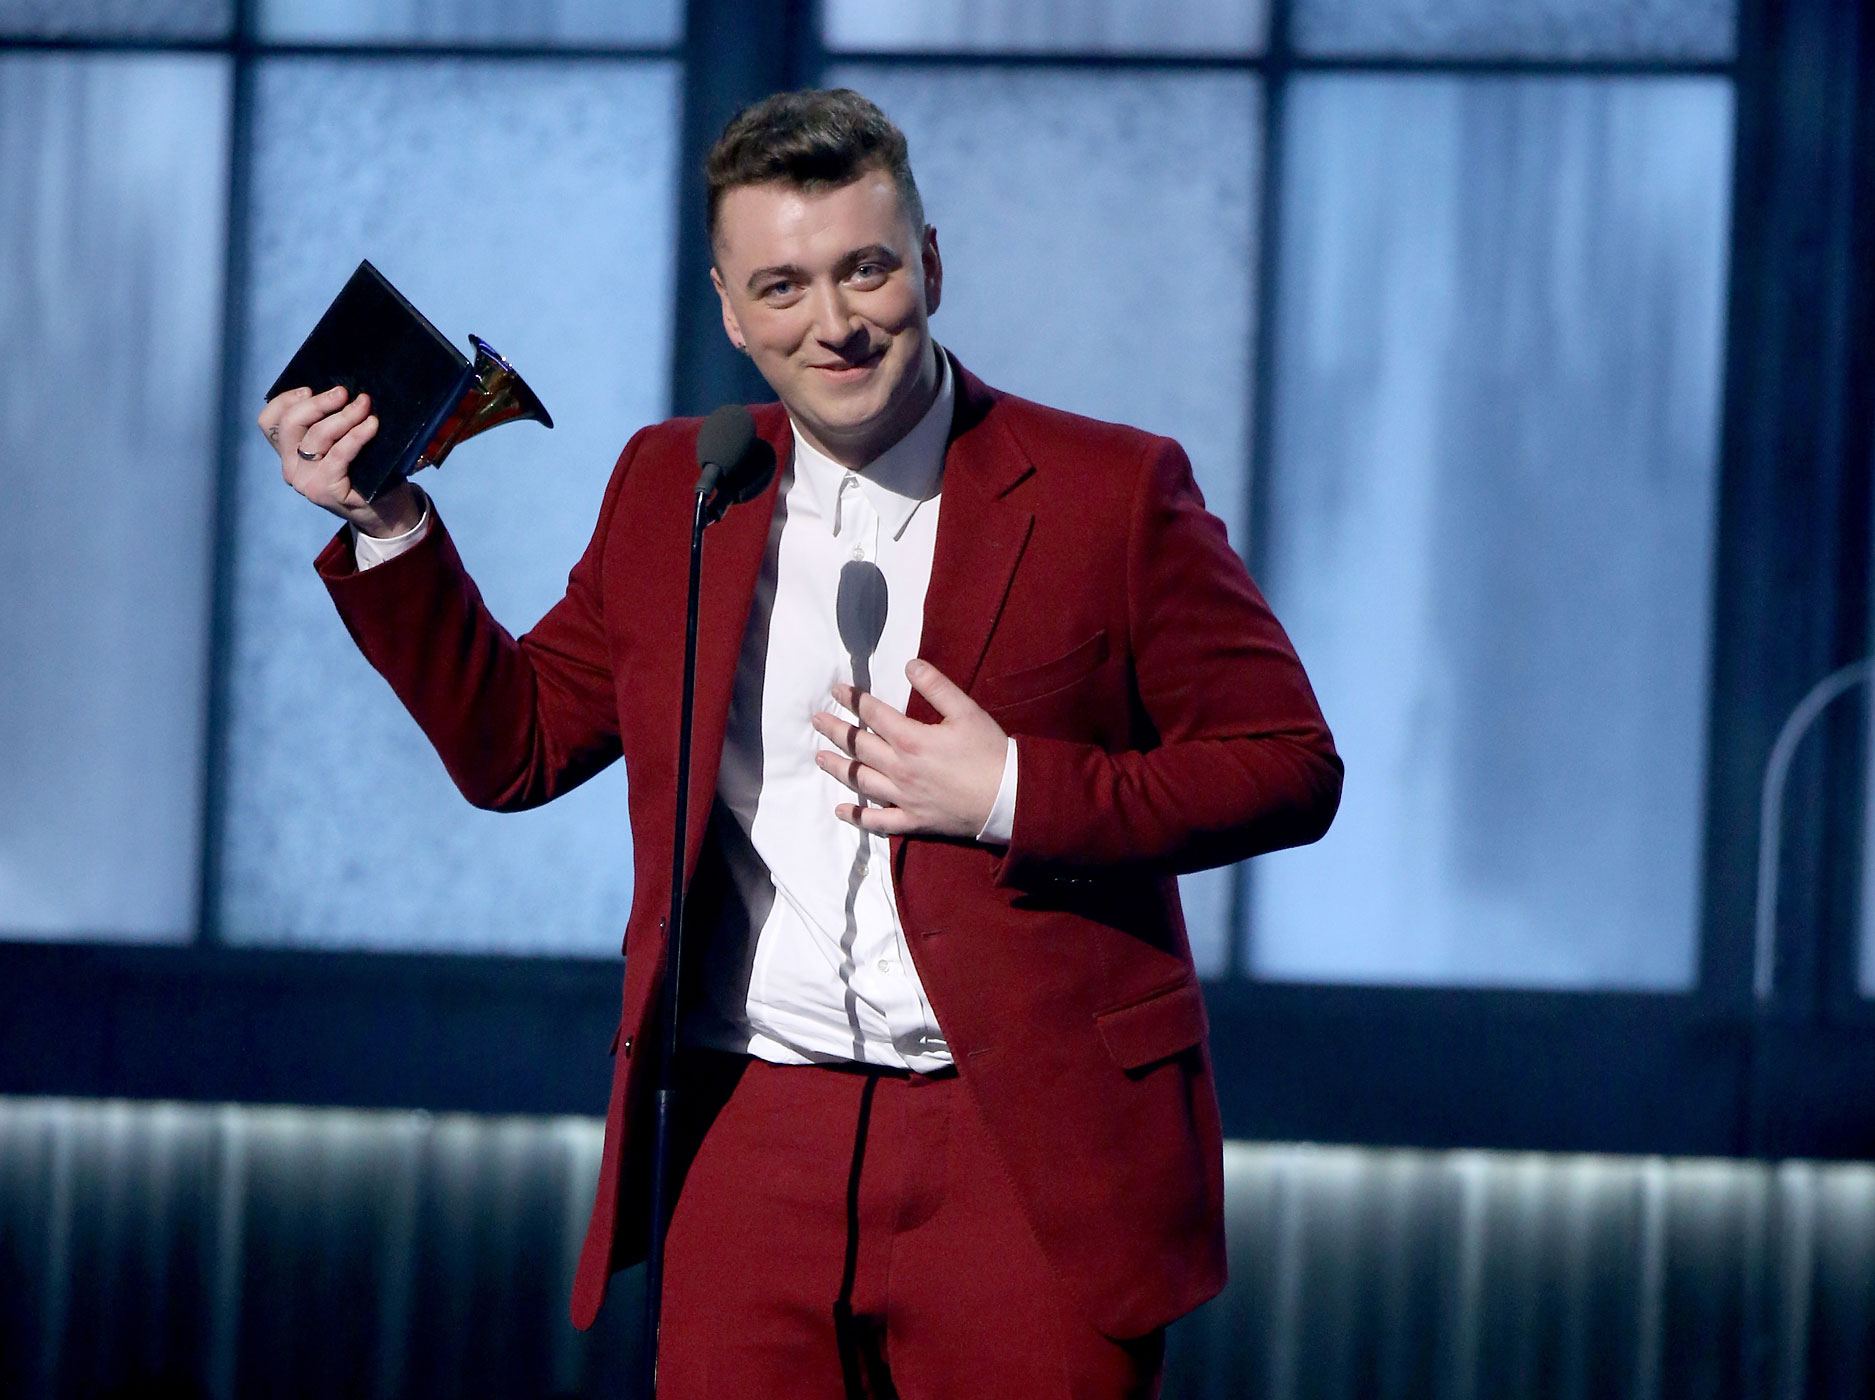 Sam Smith accepts a Grammy onstage at the 57th Annual Grammy Awards in Los Angeles, Feb. 8, 2015.